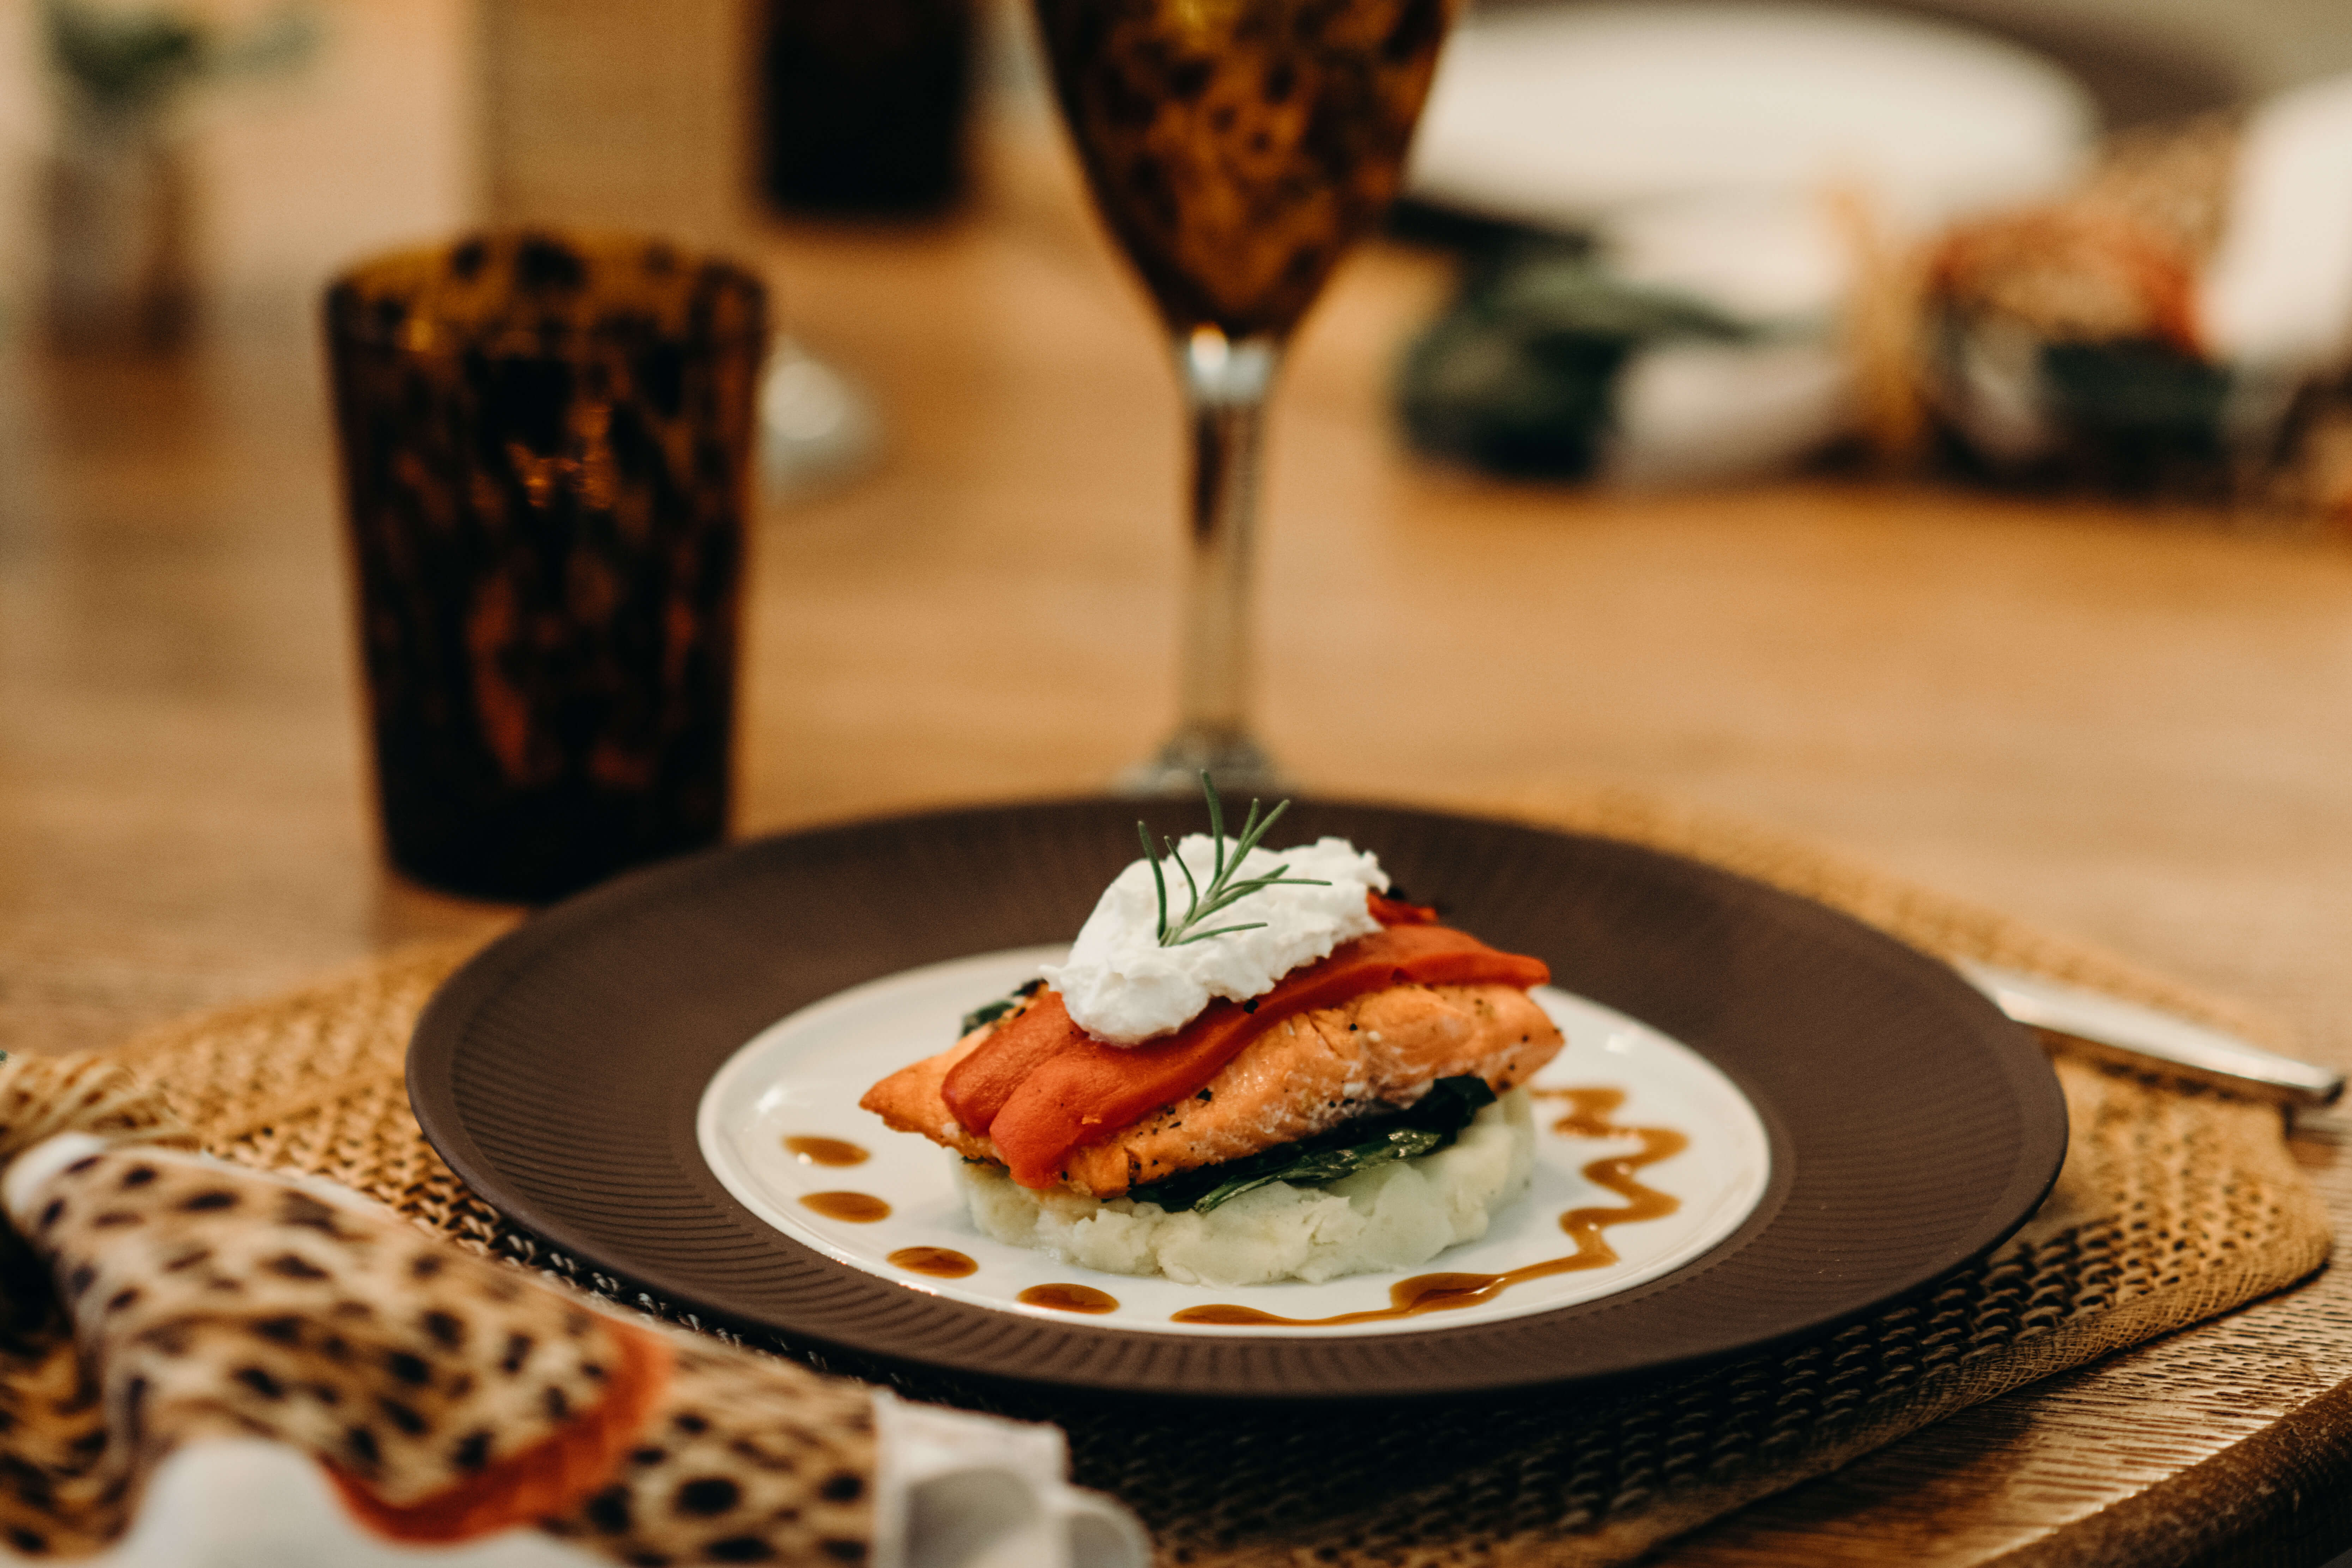 Salmon Stack with Roasted Red Peppers, Goat Cheese and Wasabi Mashed Potatoes photo by Page Teahan